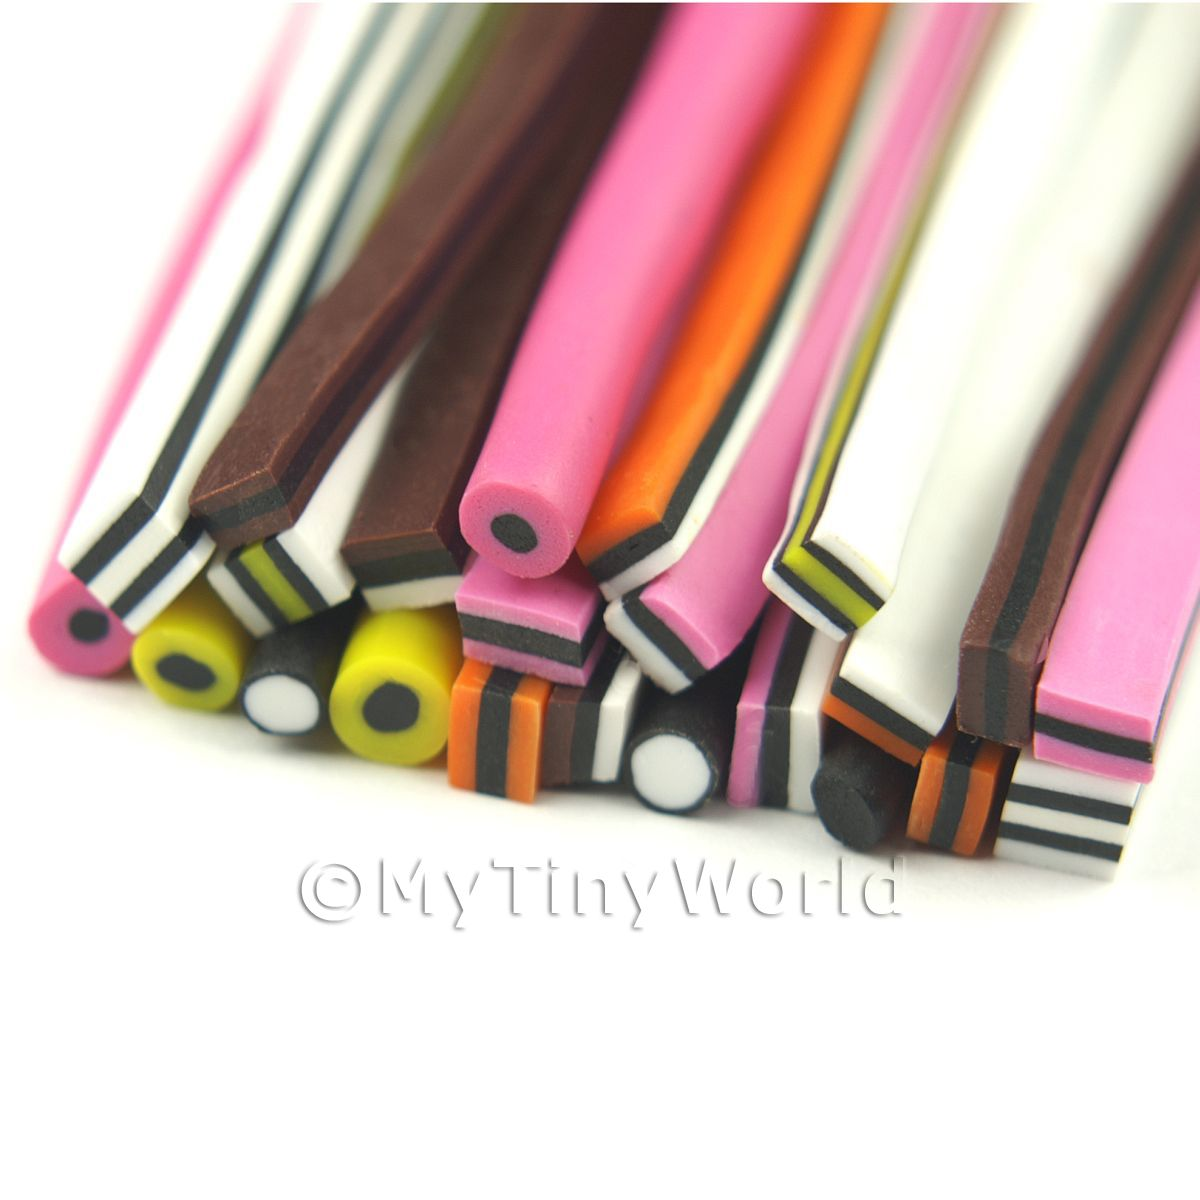 24 All Sorts Canes - Nail Art Bulk Pack